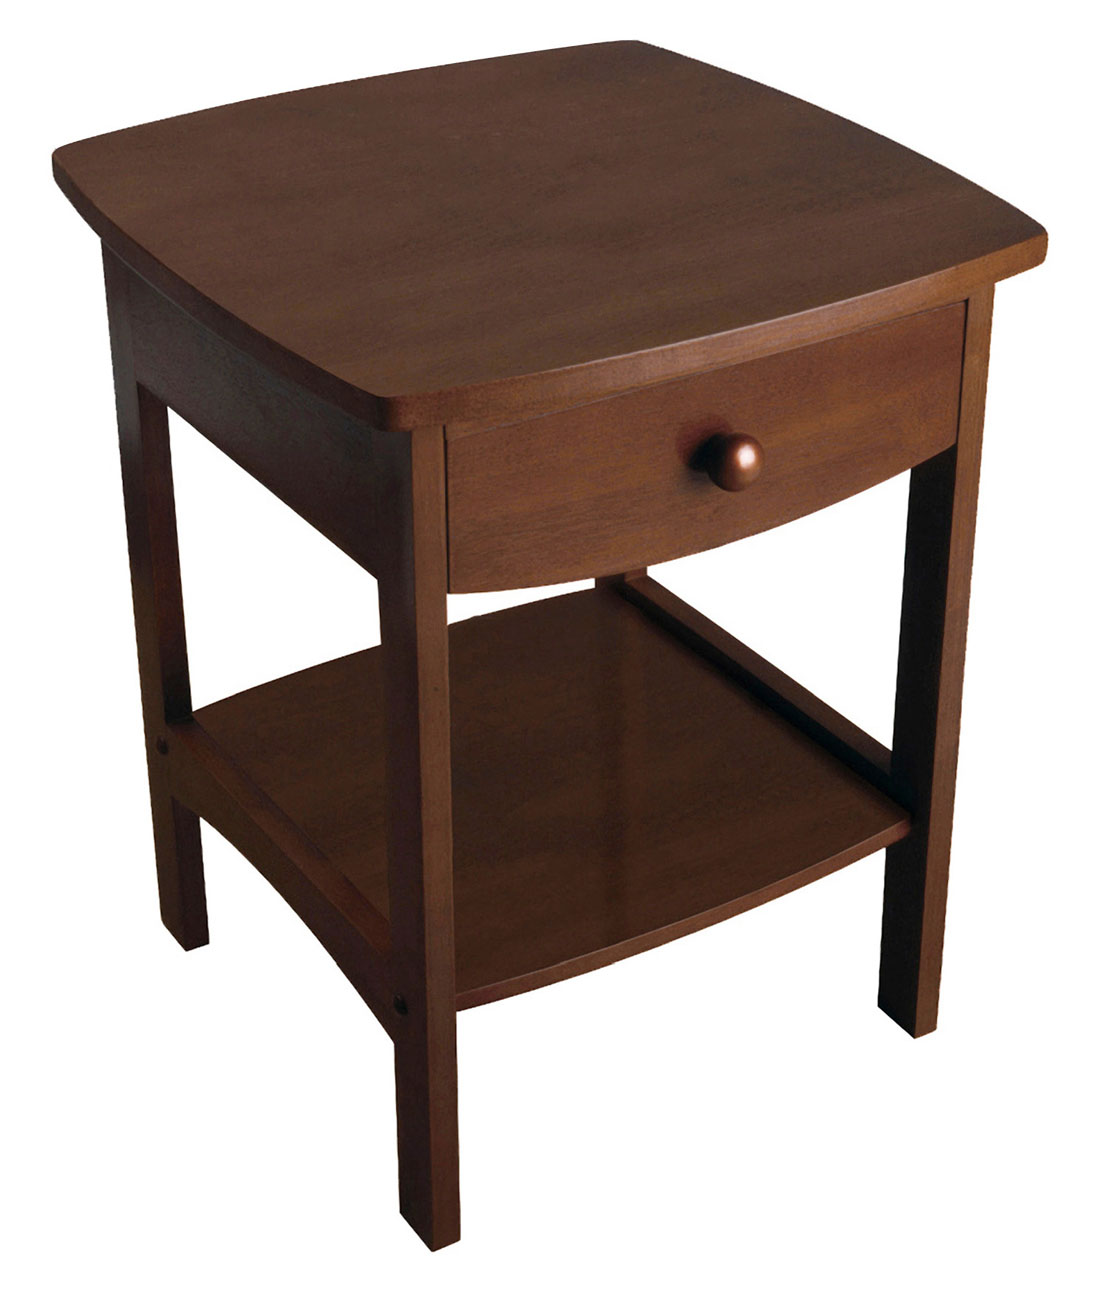 winsome wood claire accent table anitque walnut finish household timmy black corner umbrella wedge base small retro armchair cool end ideas metal side with top patio grill high